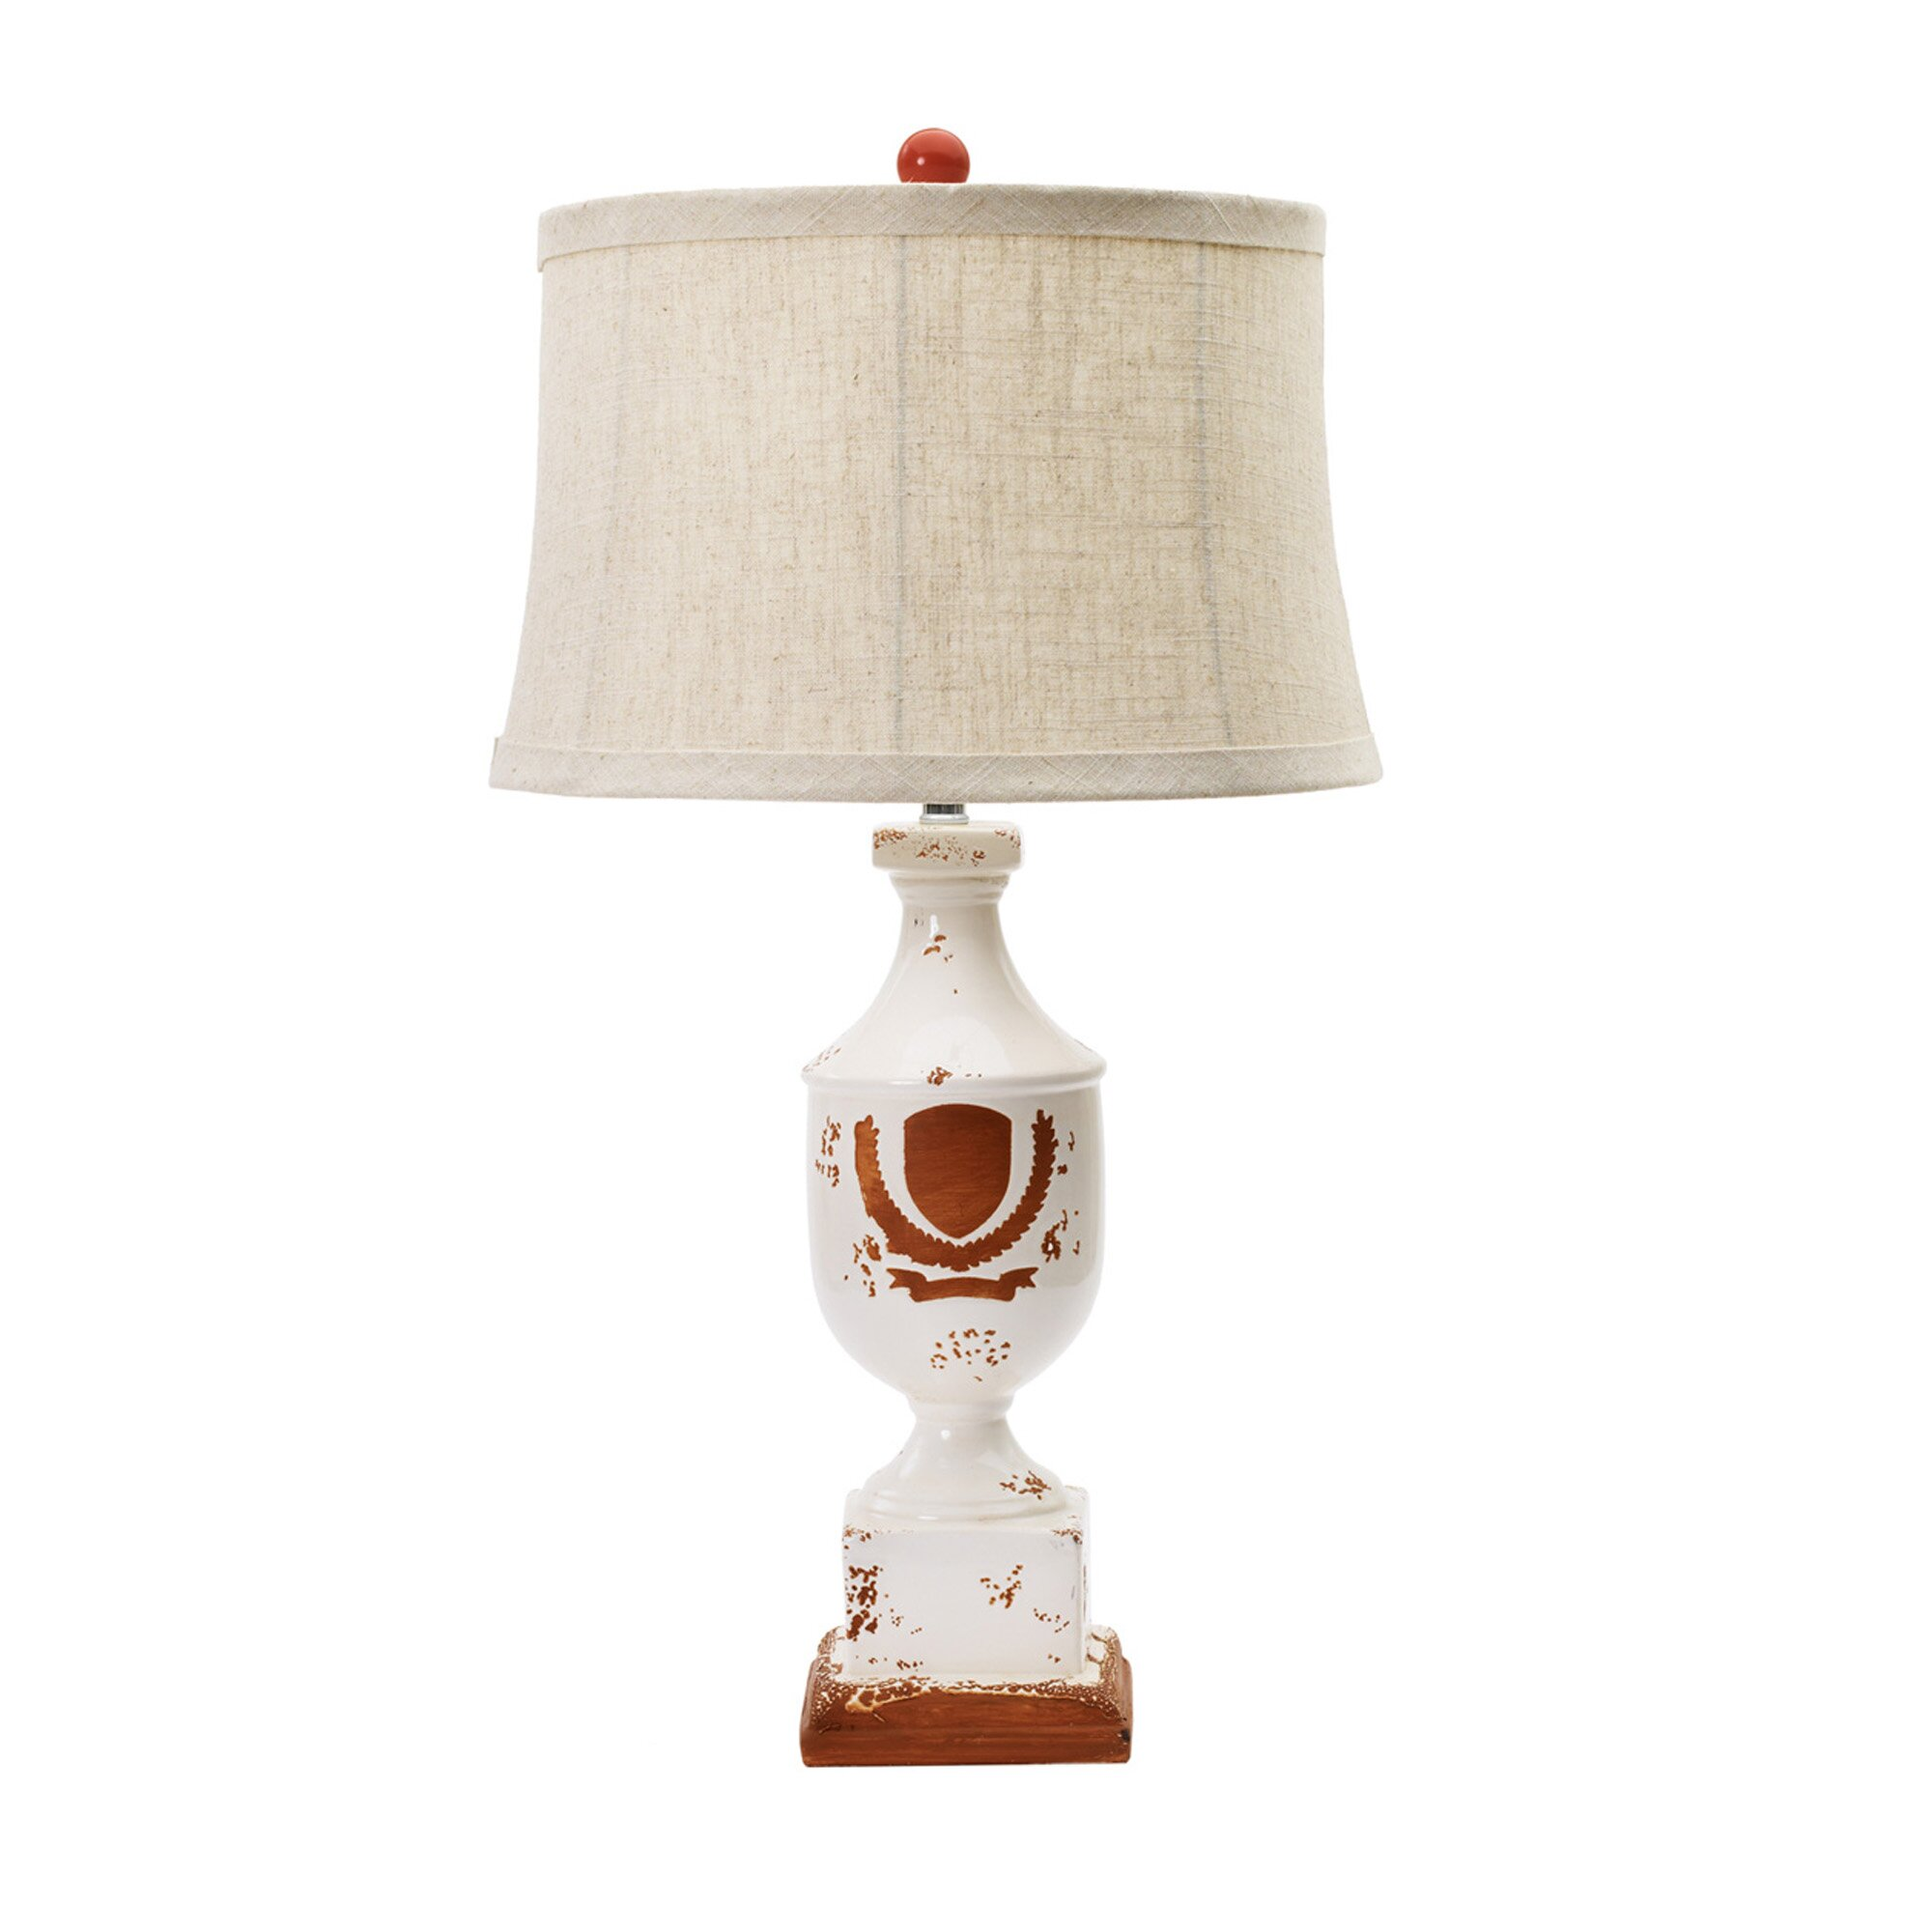 fangio lighting 28 h table lamp with oval shade. Black Bedroom Furniture Sets. Home Design Ideas